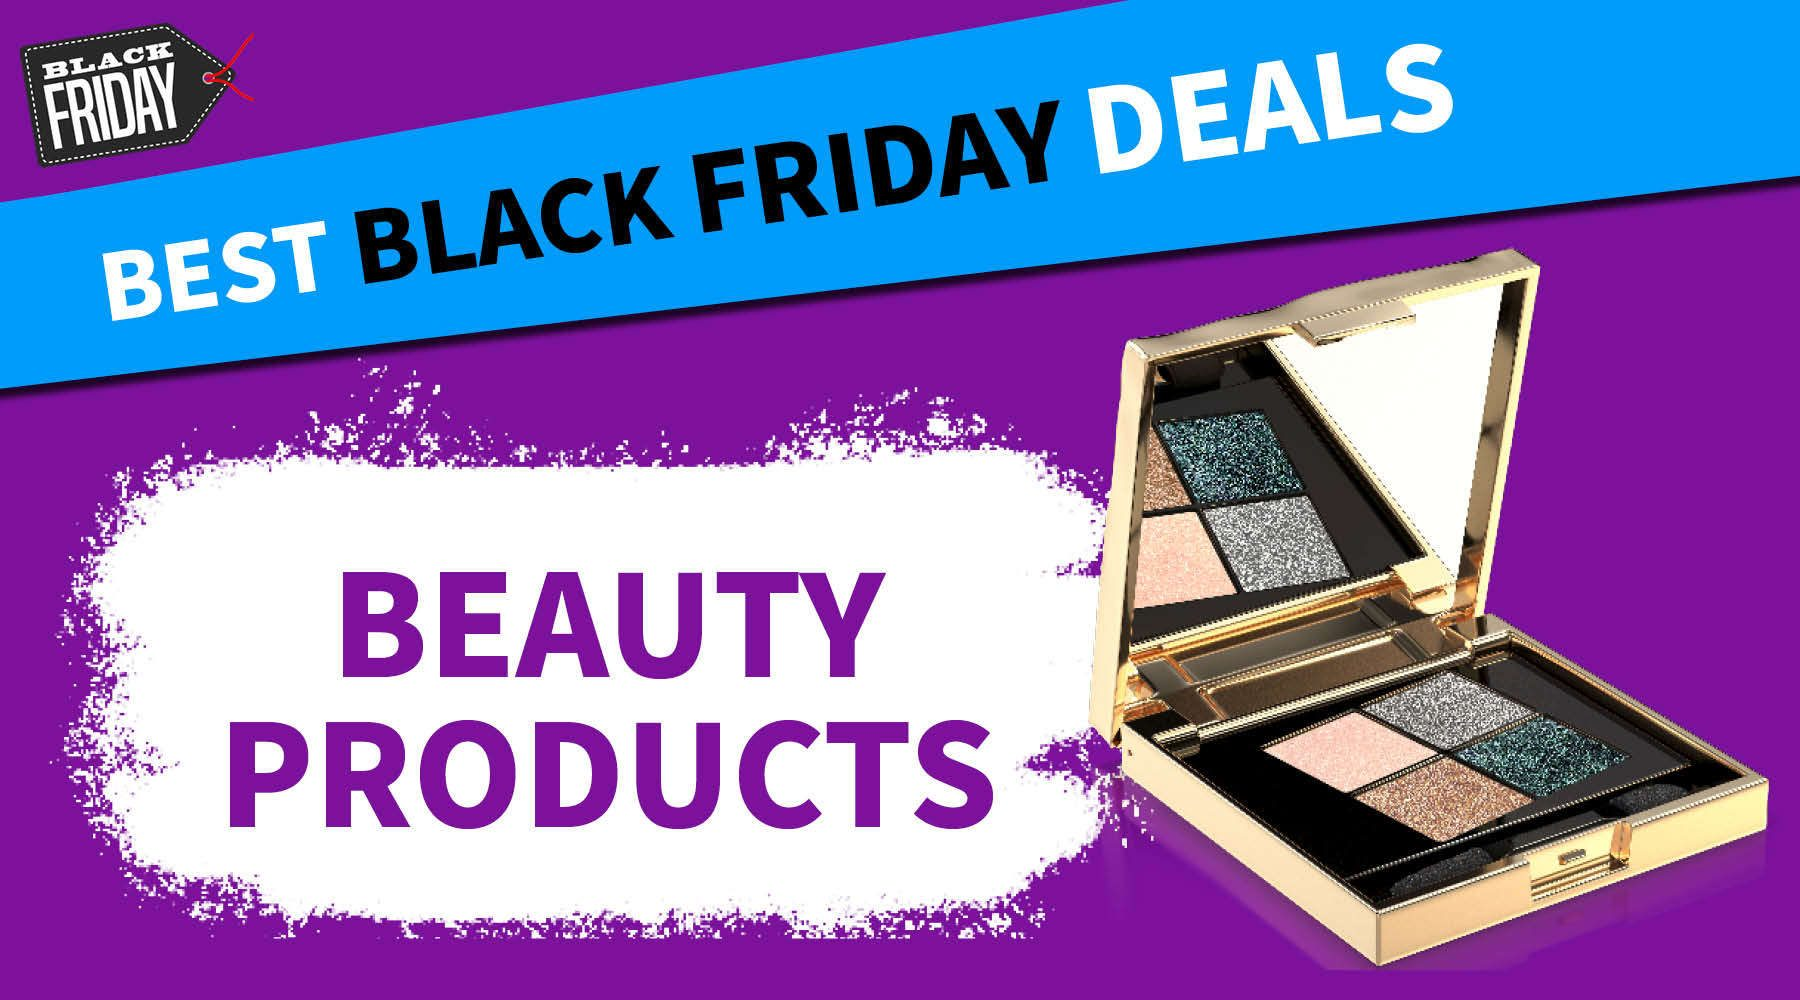 Best Black Friday beauty deals 2020: Early offers from